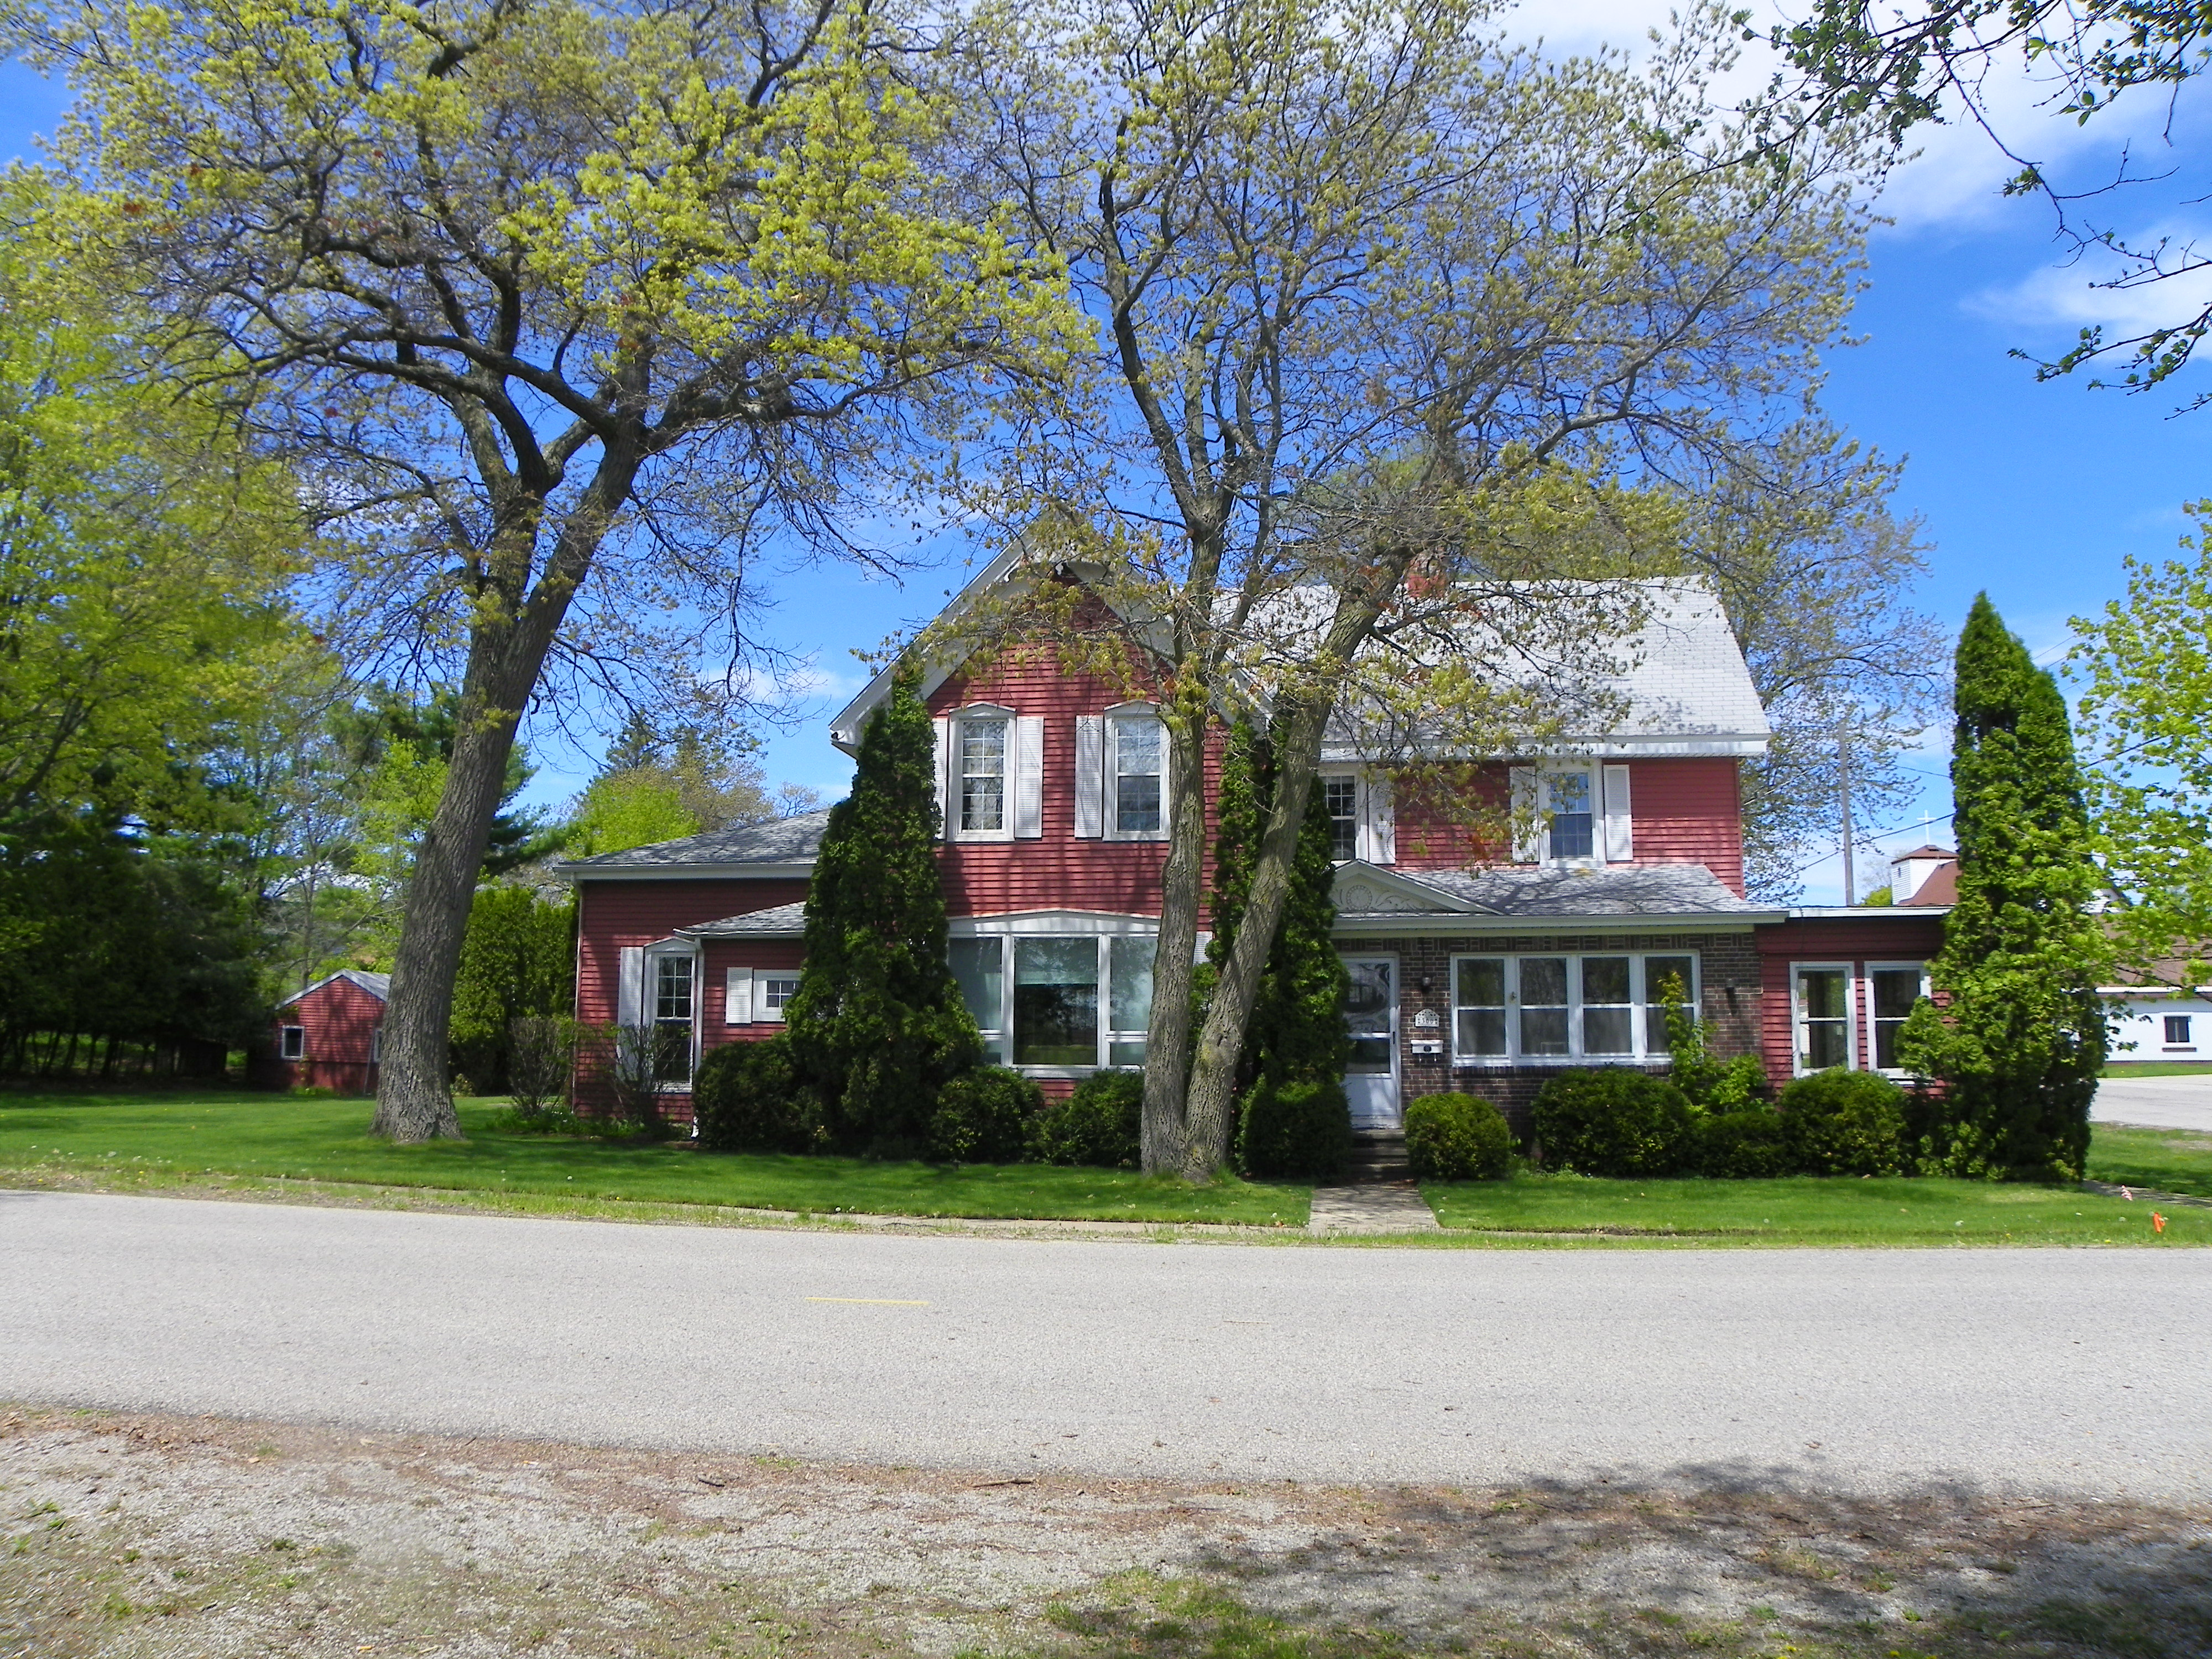 Iconic and historical home in the Piety Hill location of downtown Oscoda